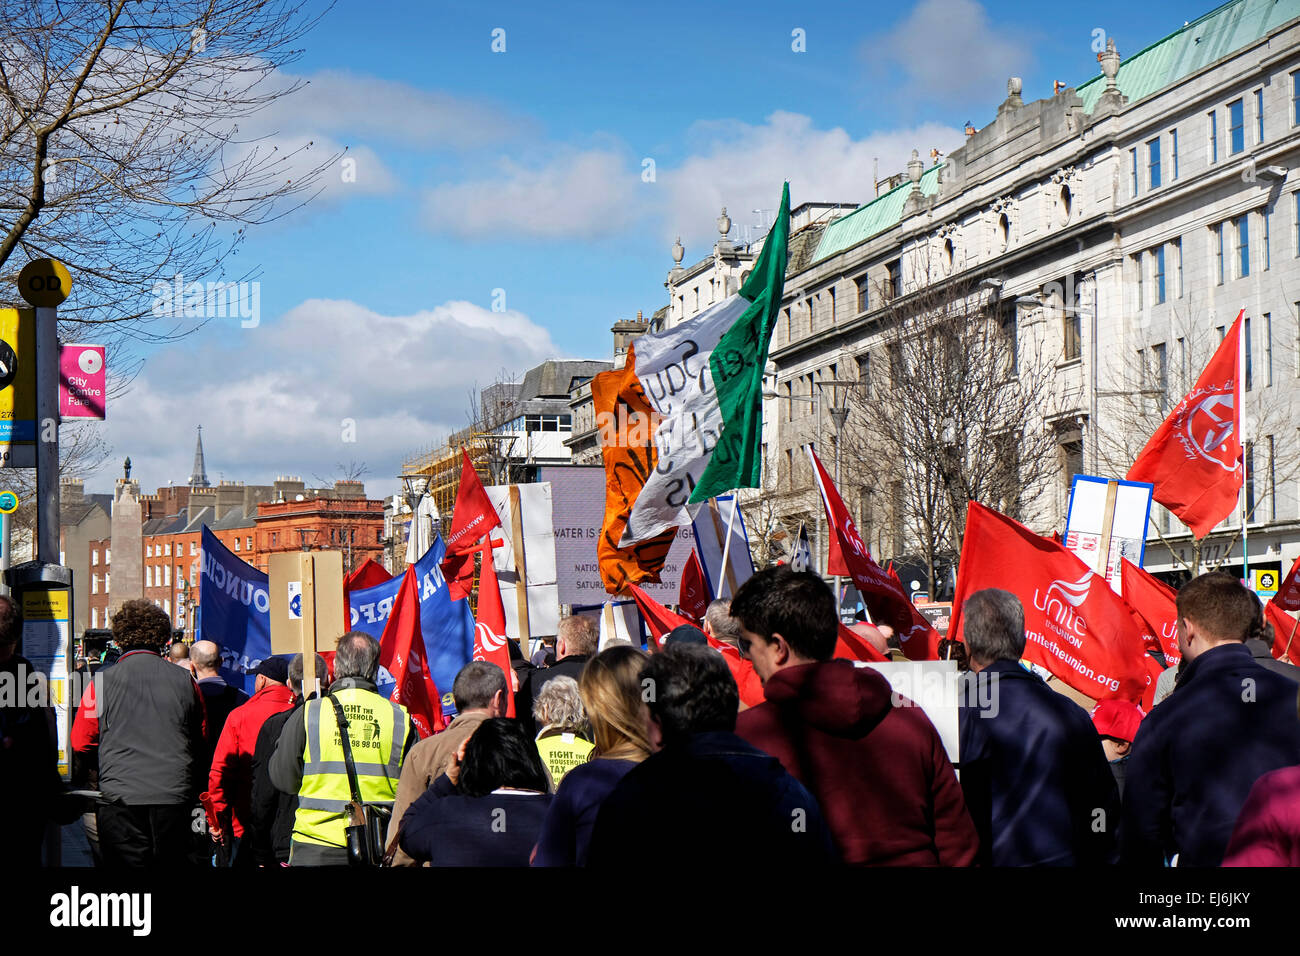 Water protest march Dublin Anti-water charges protesters in Dublin's O'Connell street on 21-03-15 - Stock Image